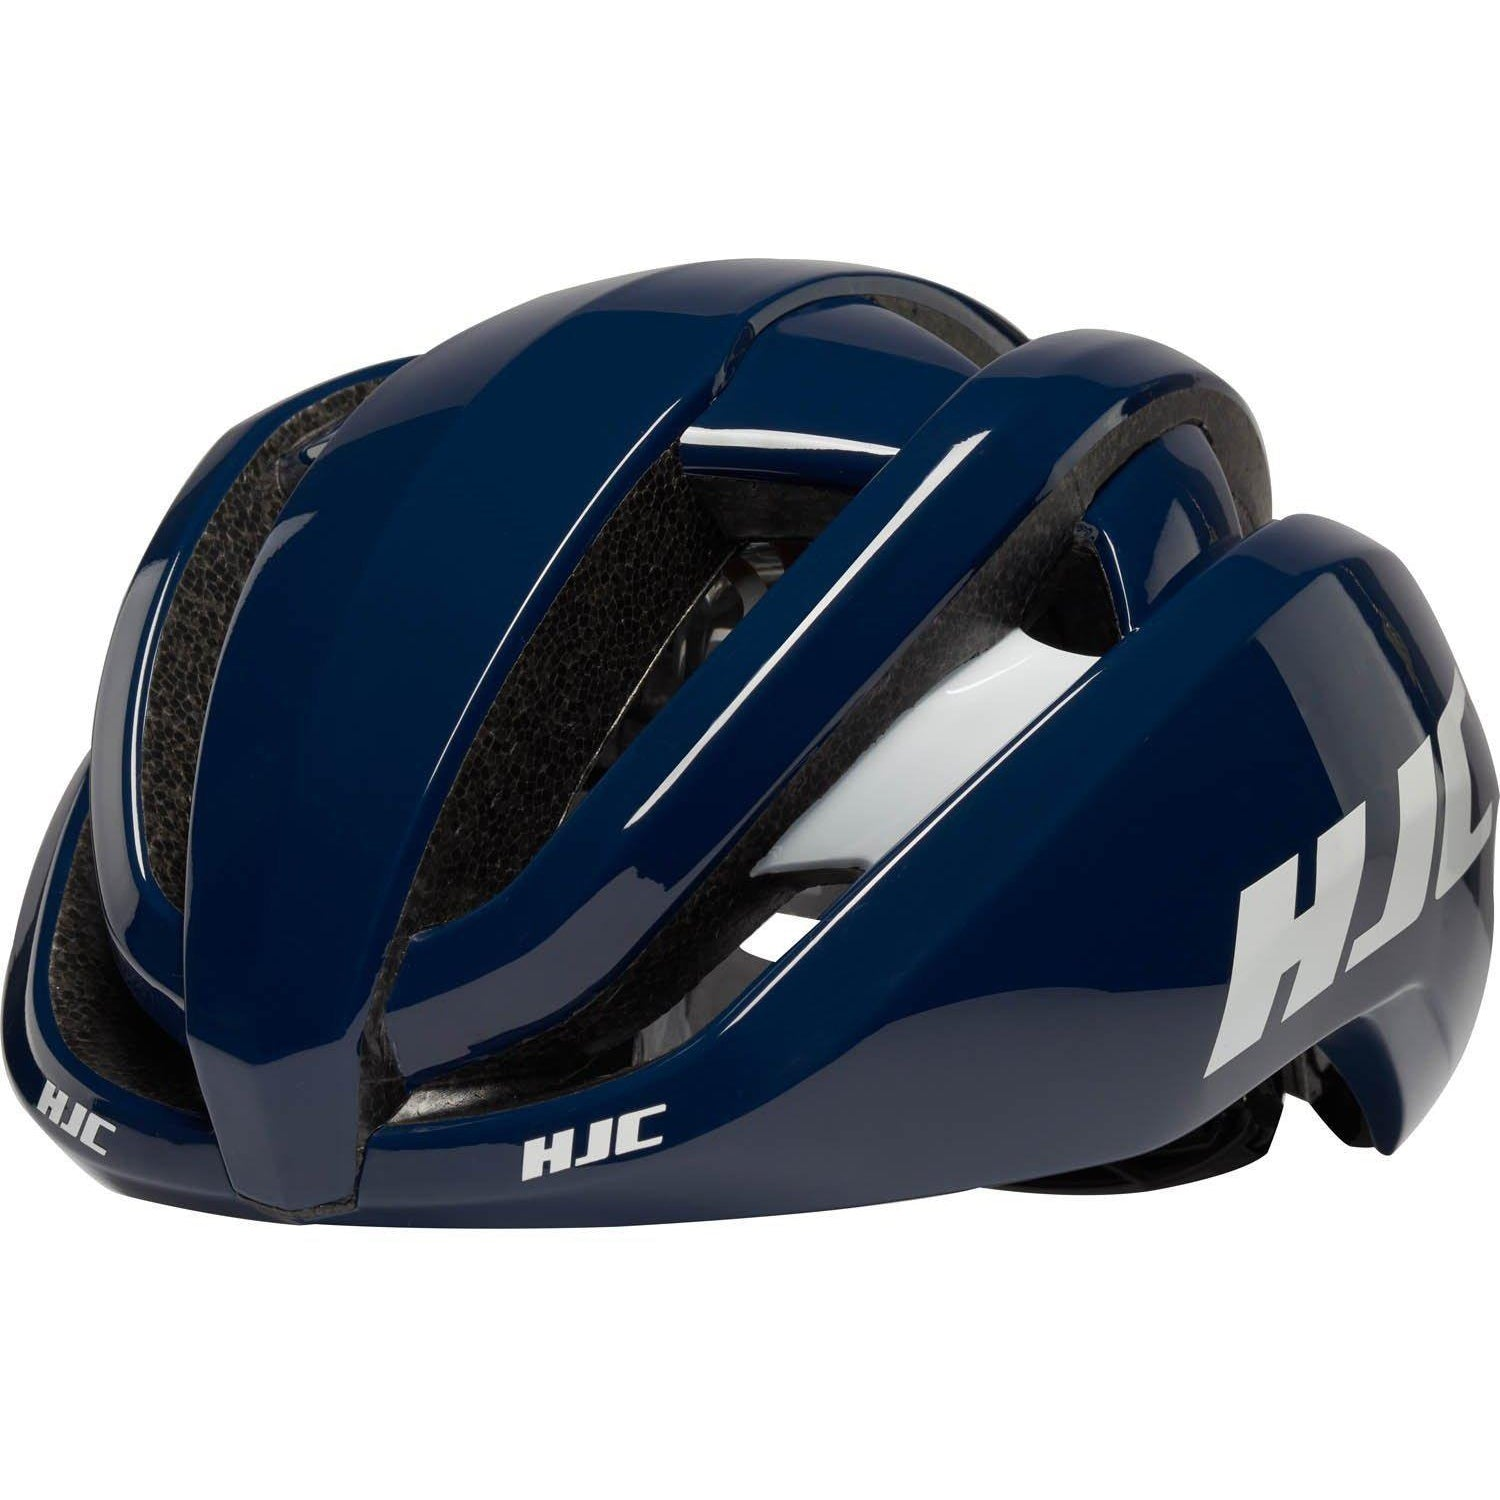 HJC-HJC Ibex 2.0 Road Cycling Helmet-Navy White-S-HJC81240201-saddleback-elite-performance-cycling